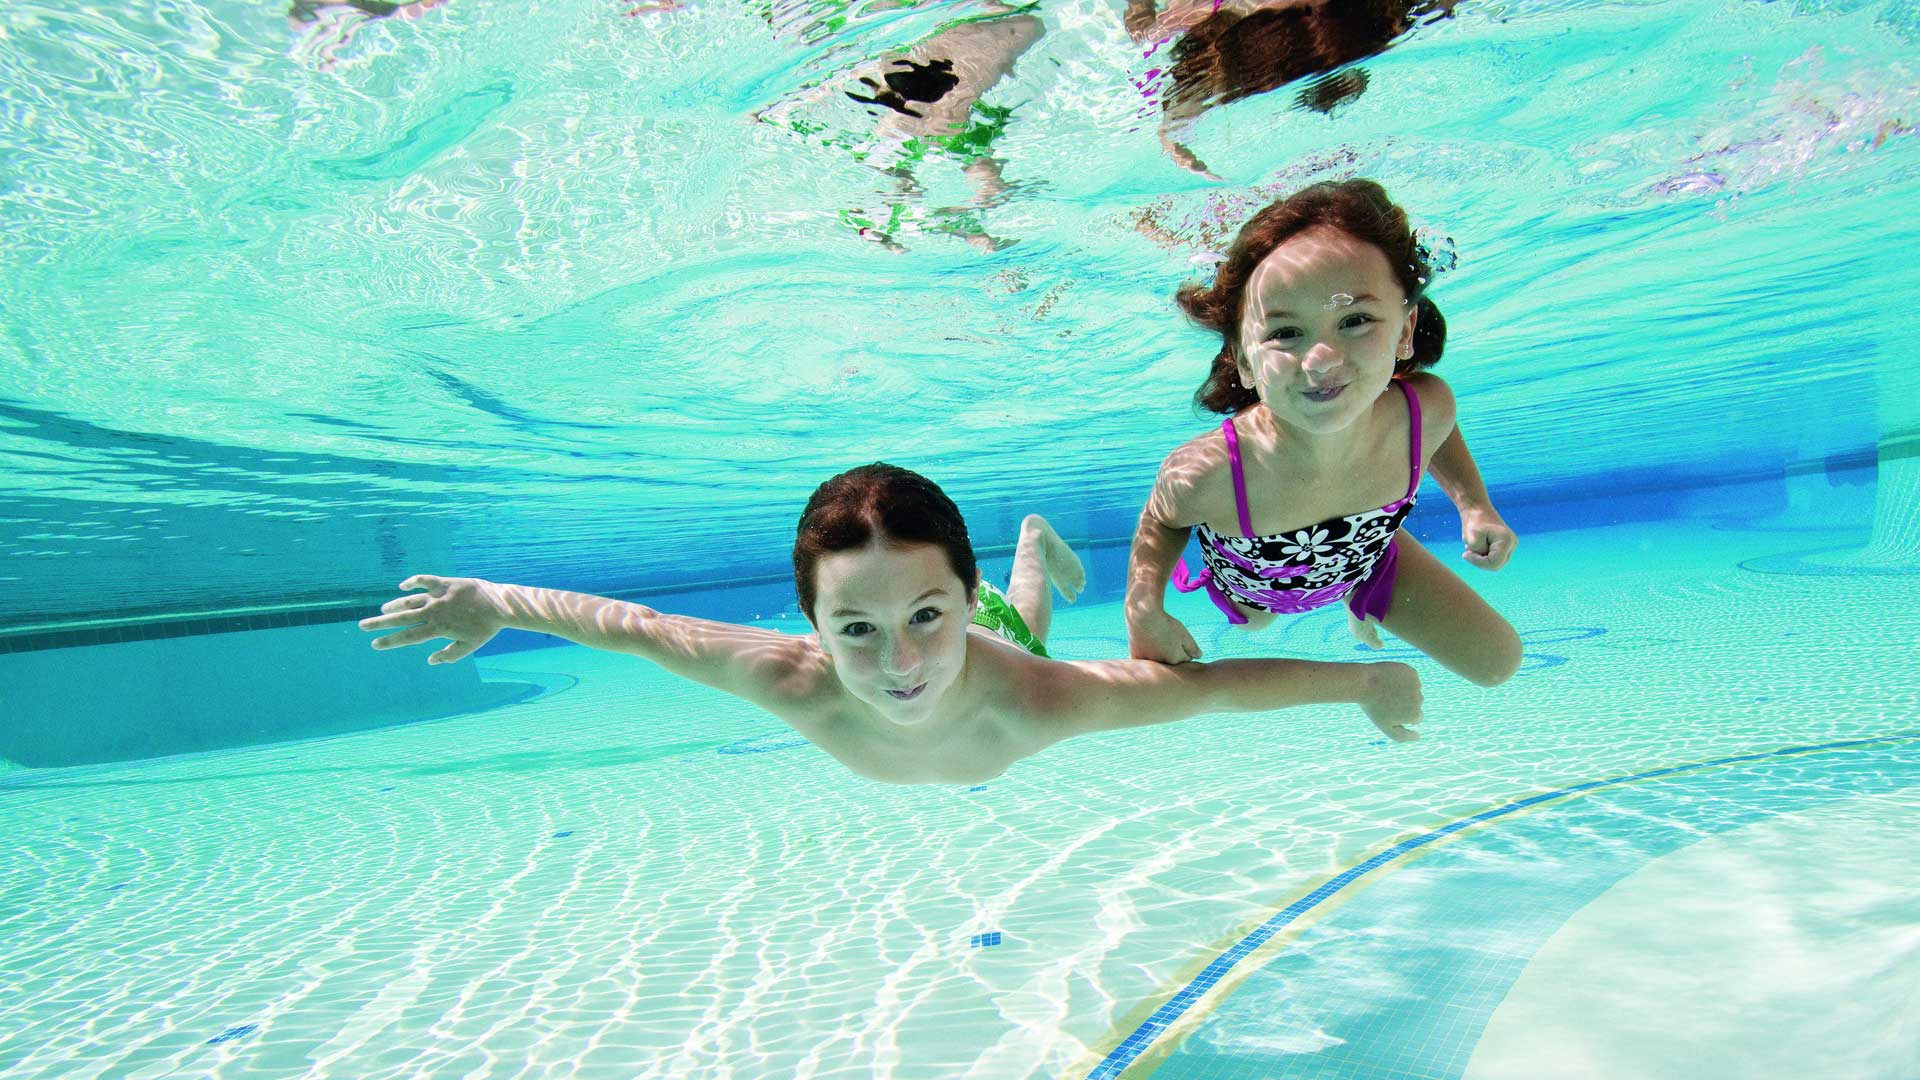 kids in swimming pool wallpaper wallpapersafari